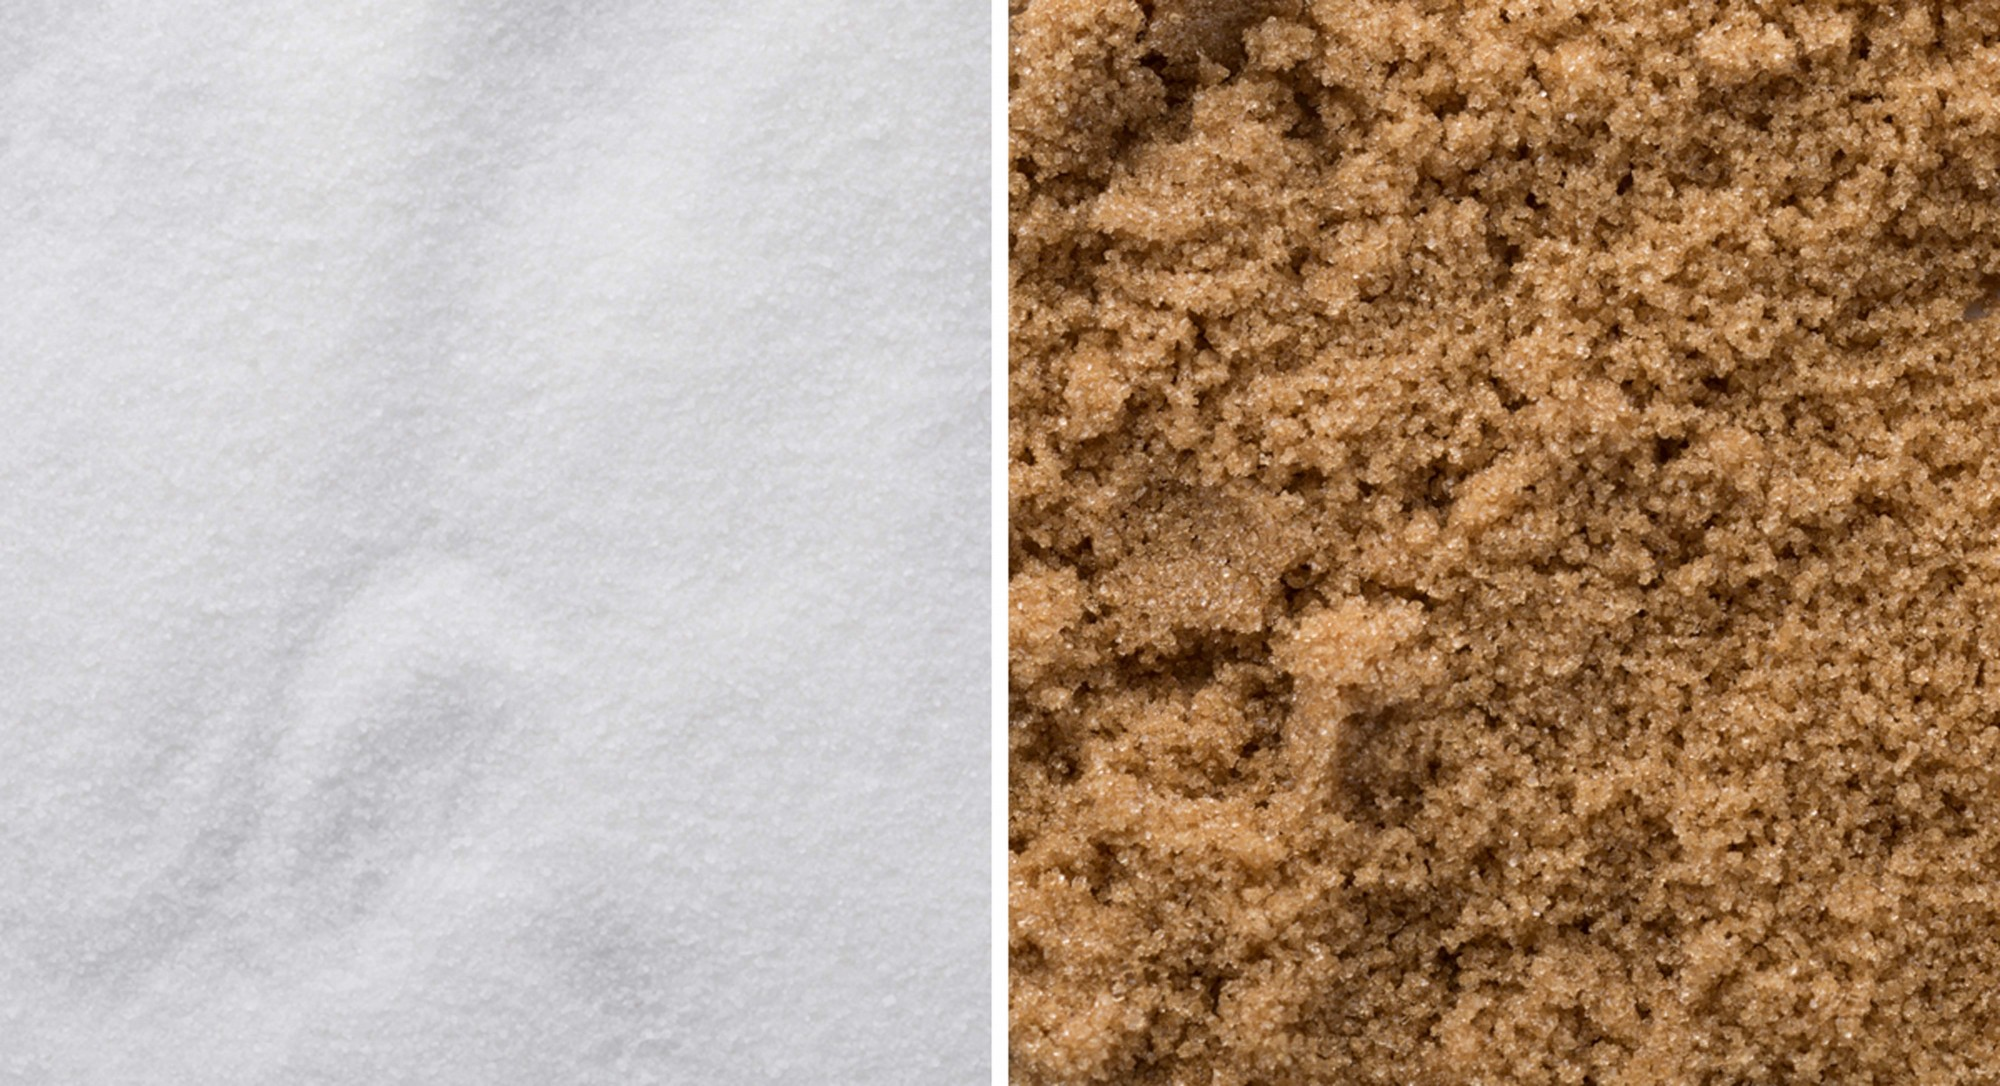 Brown Sugar vs. White Sugar